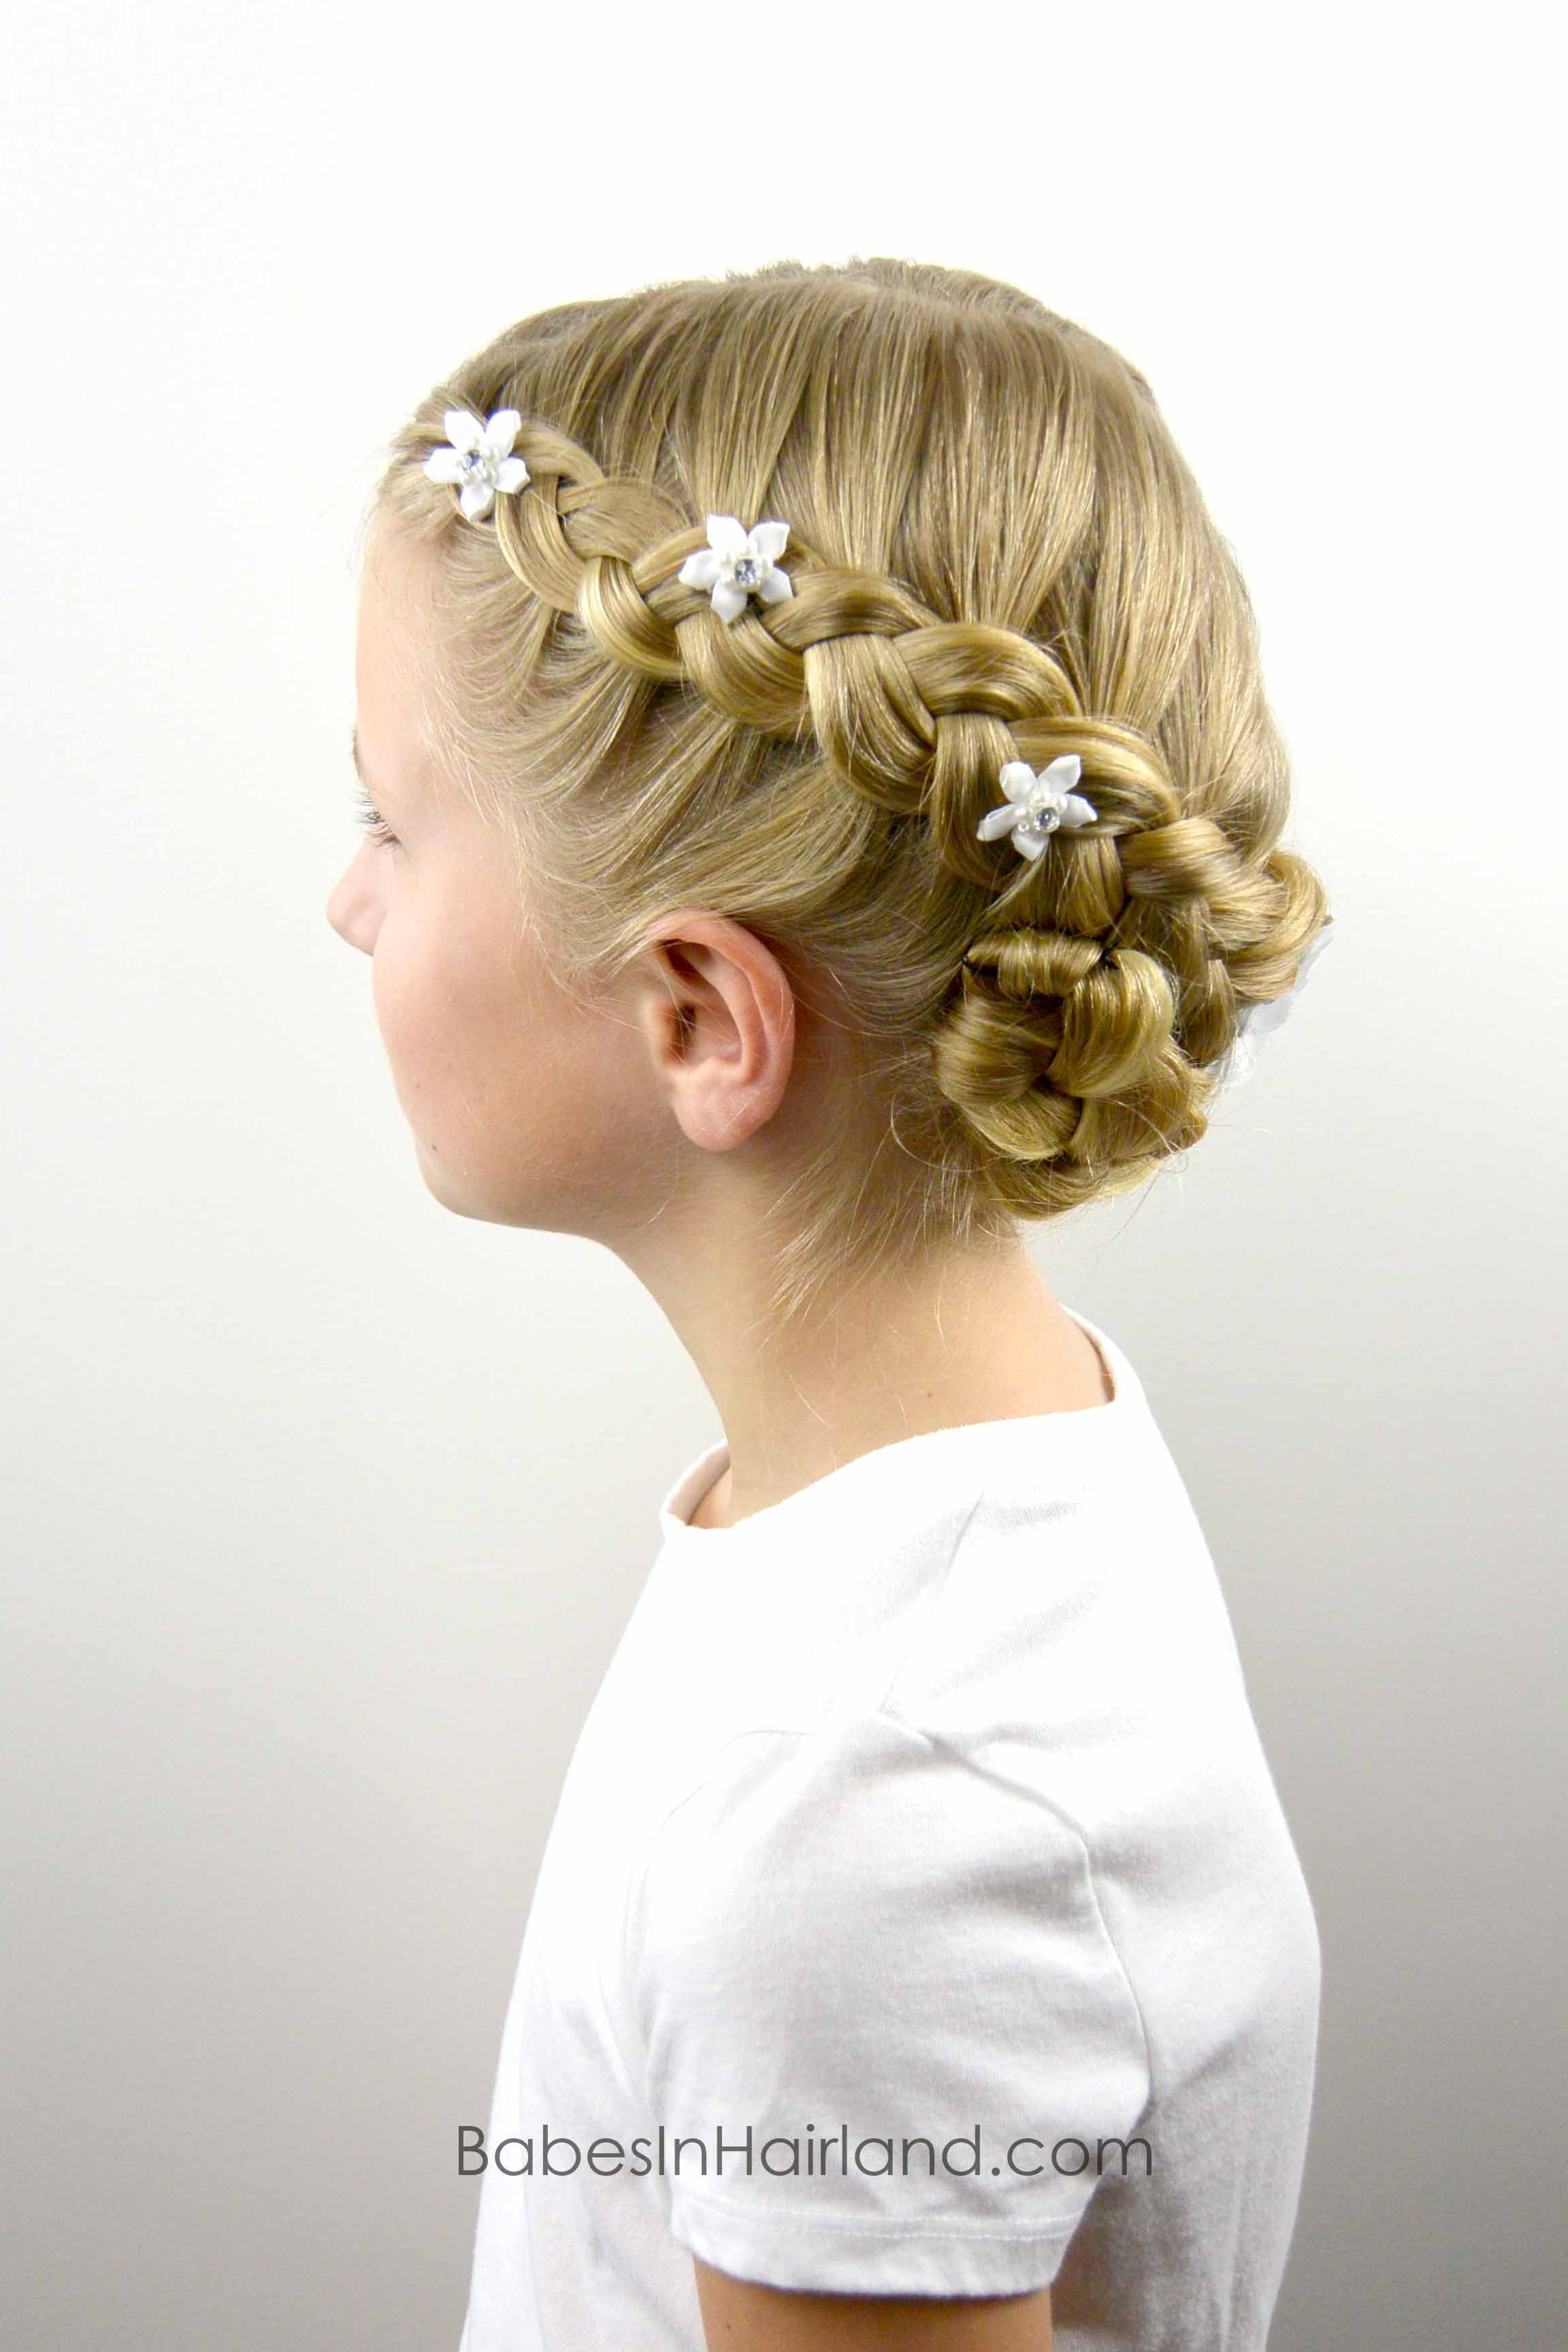 Dutch Braided Baptism Hairstyle - Babes In Hairland